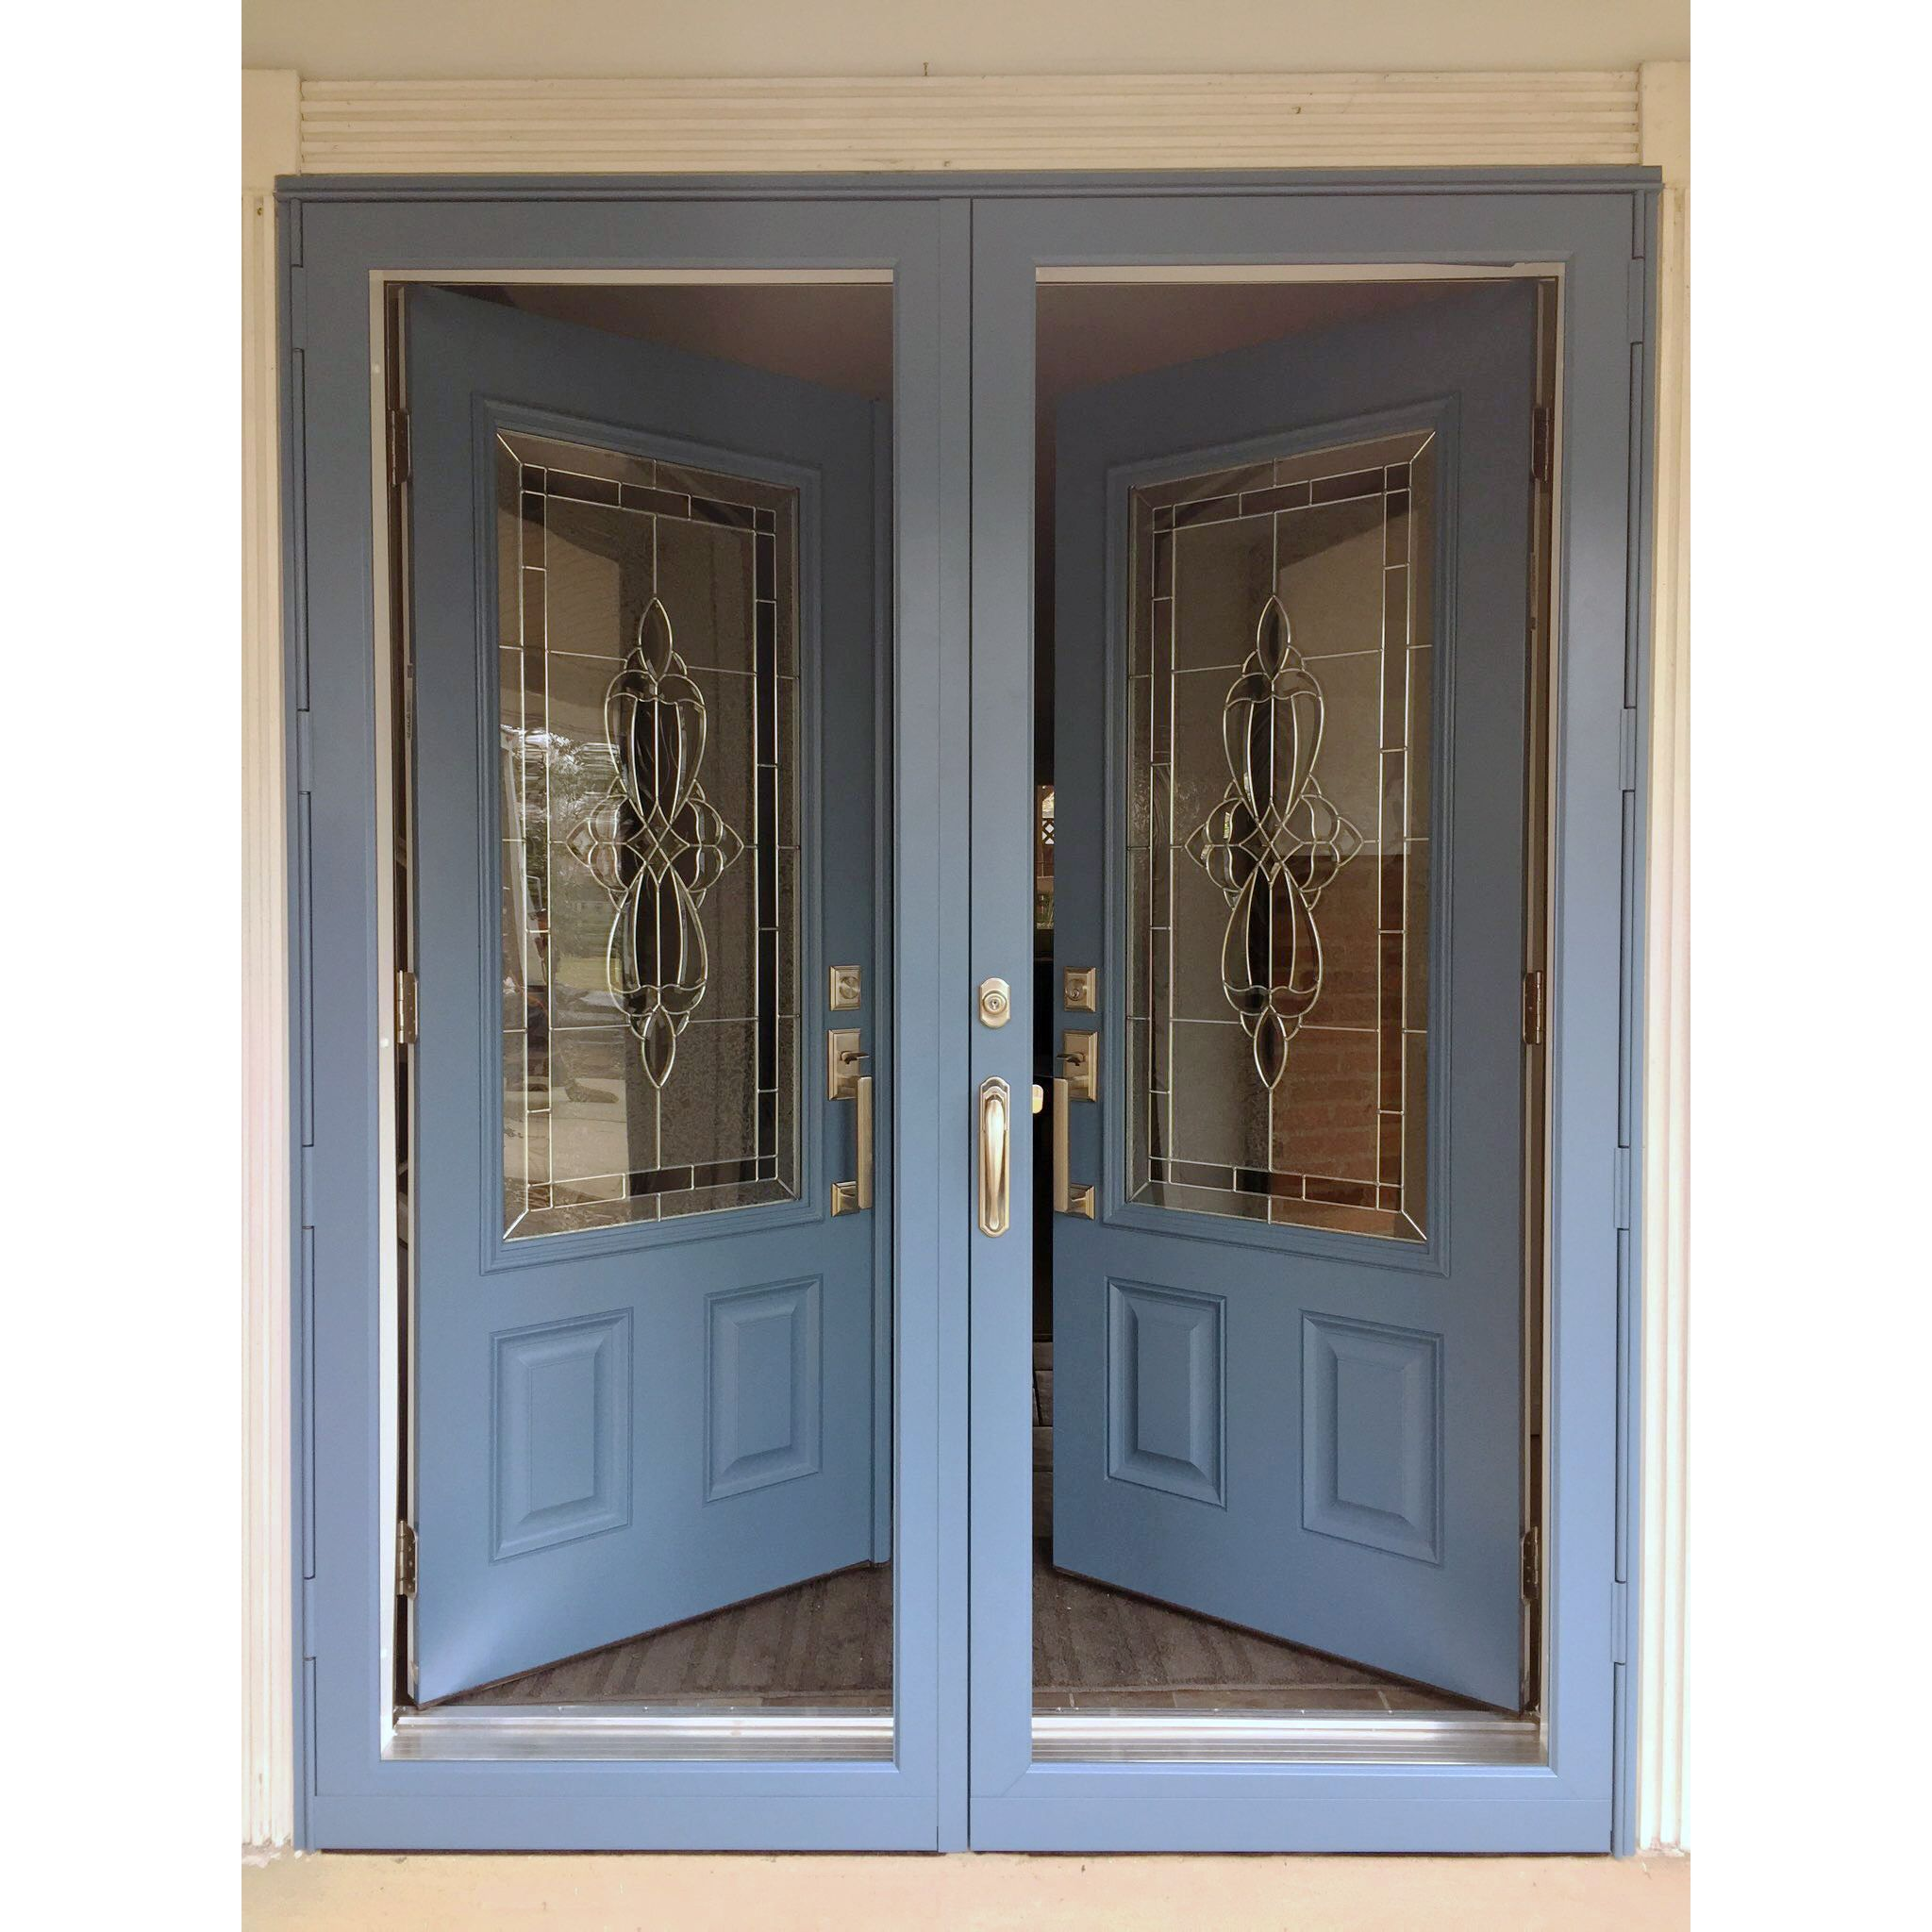 How Great Does This Set Of Double Doors Look Hm 601 Aluminum Storm Doors And Hme 268ks Entry Doo Aluminum Storm Doors Security Storm Doors Double Entry Doors